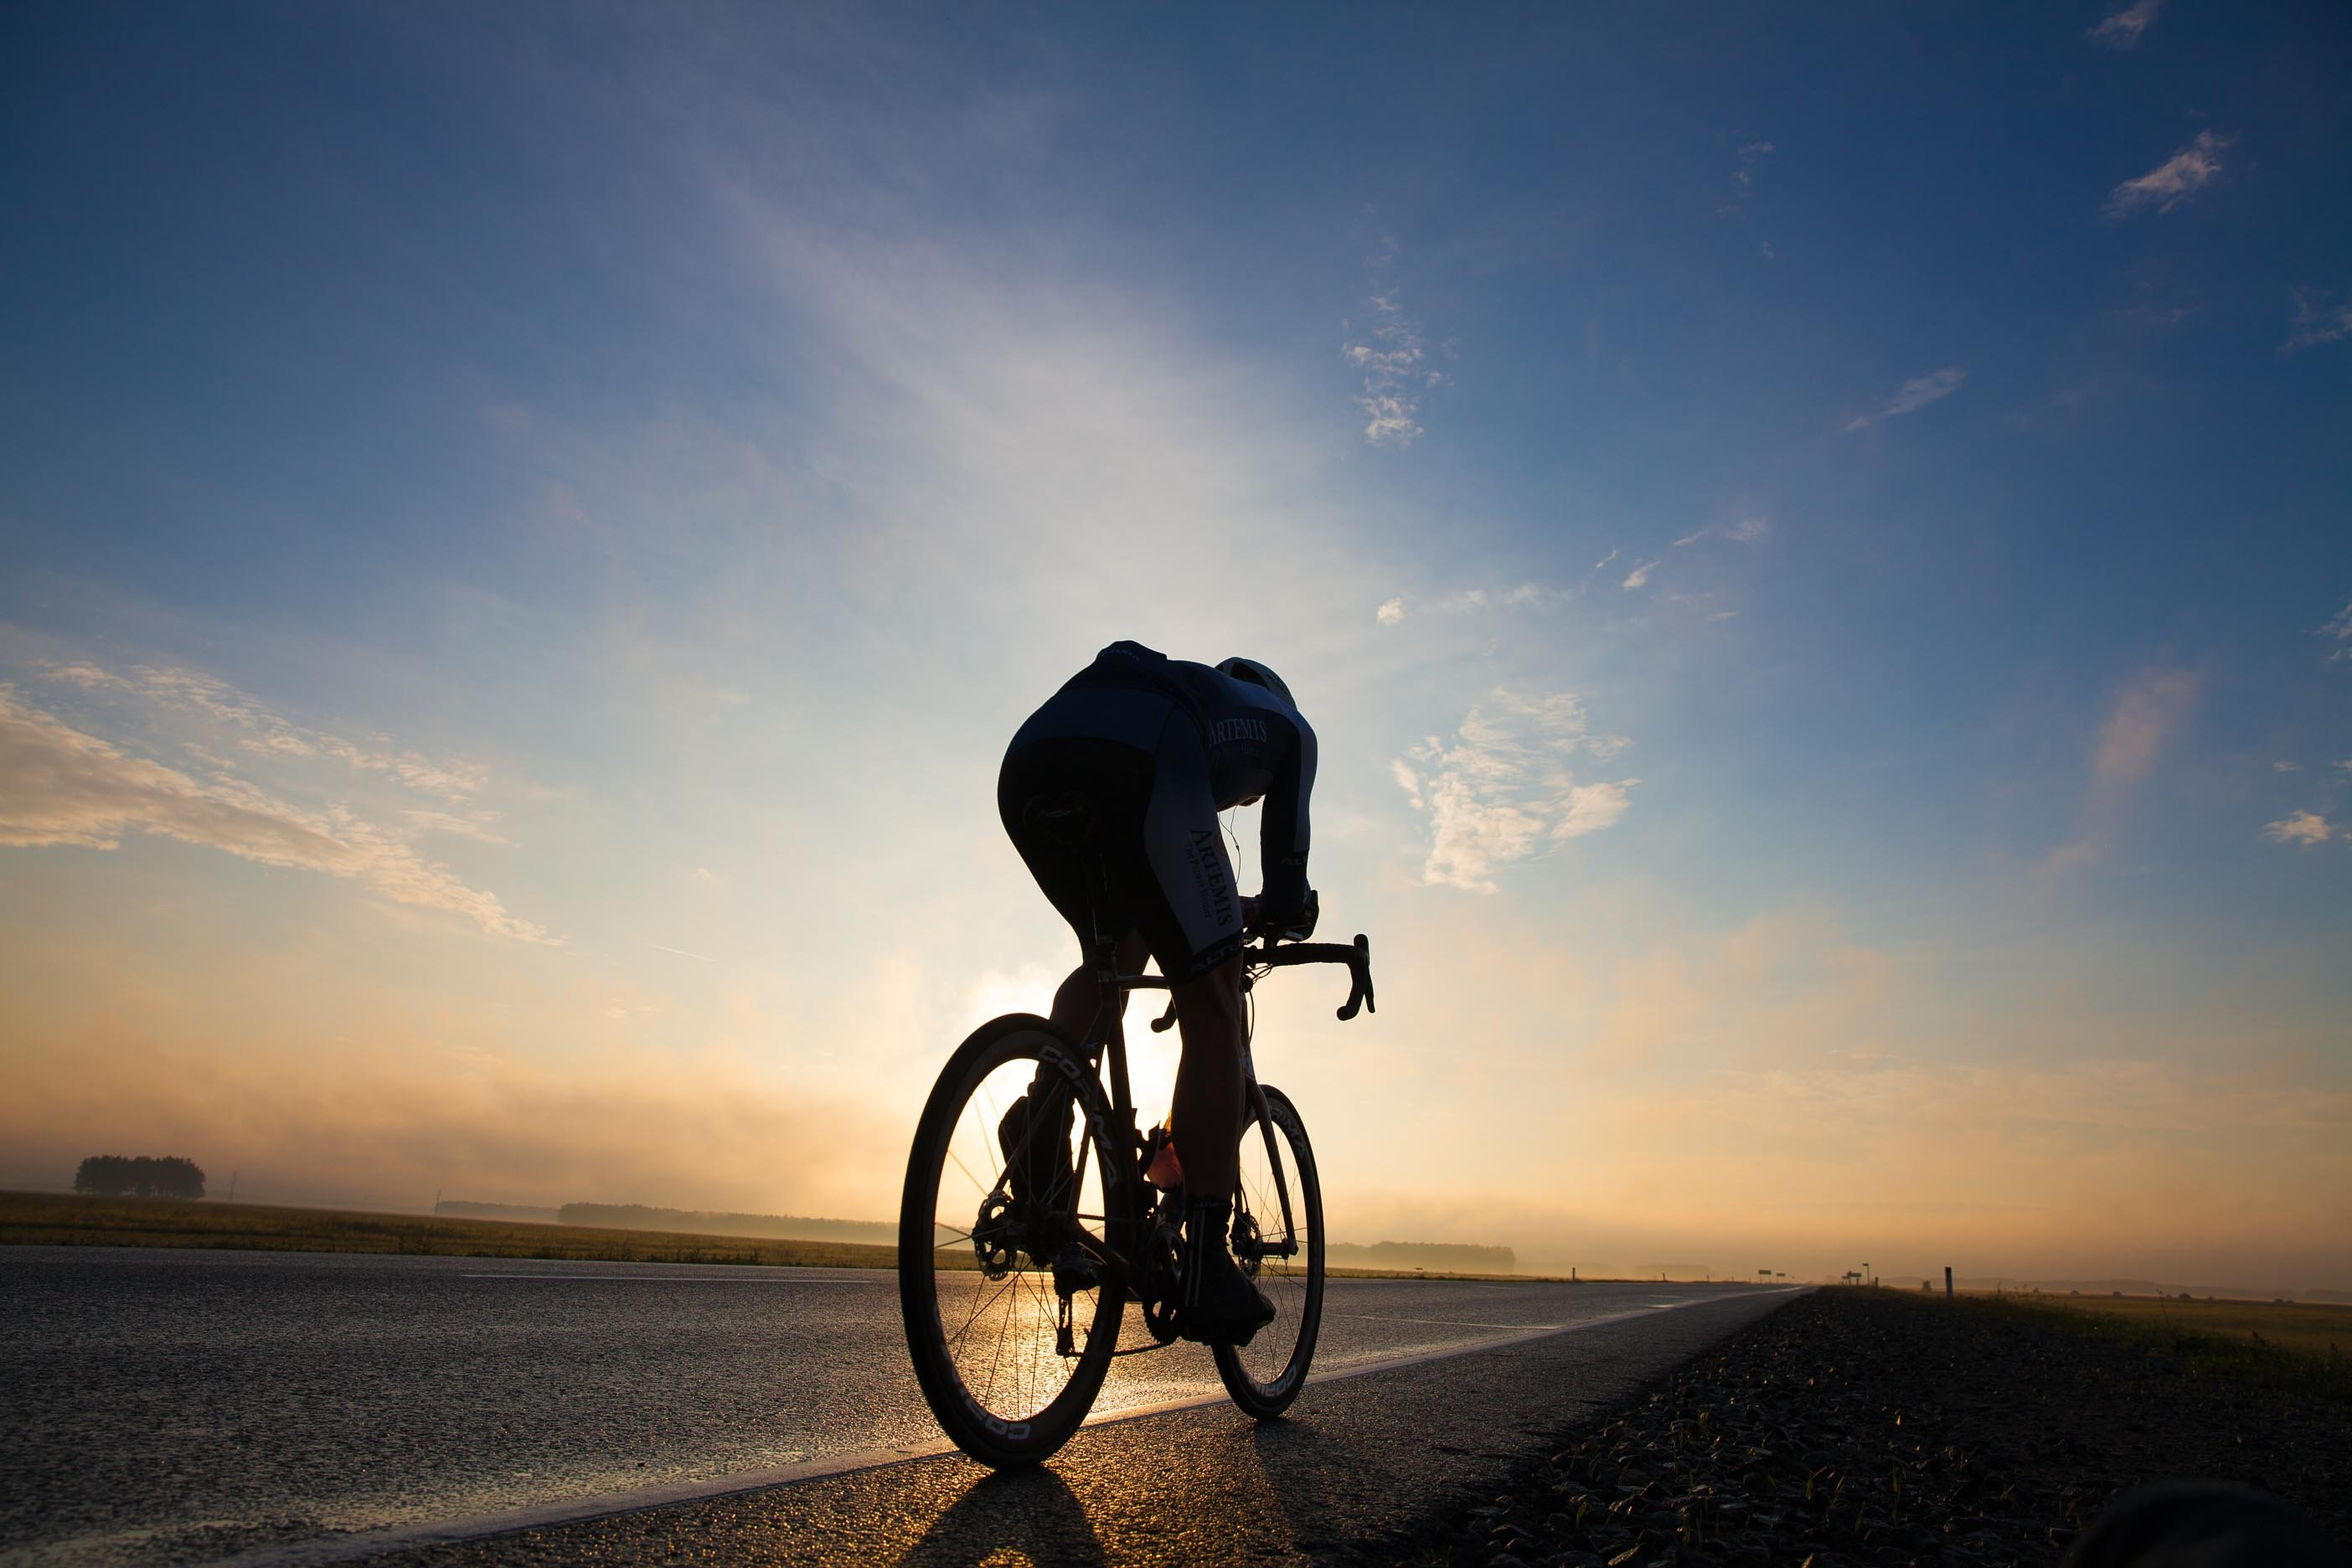 How to fuel for ultra-endurance rides according to Mark